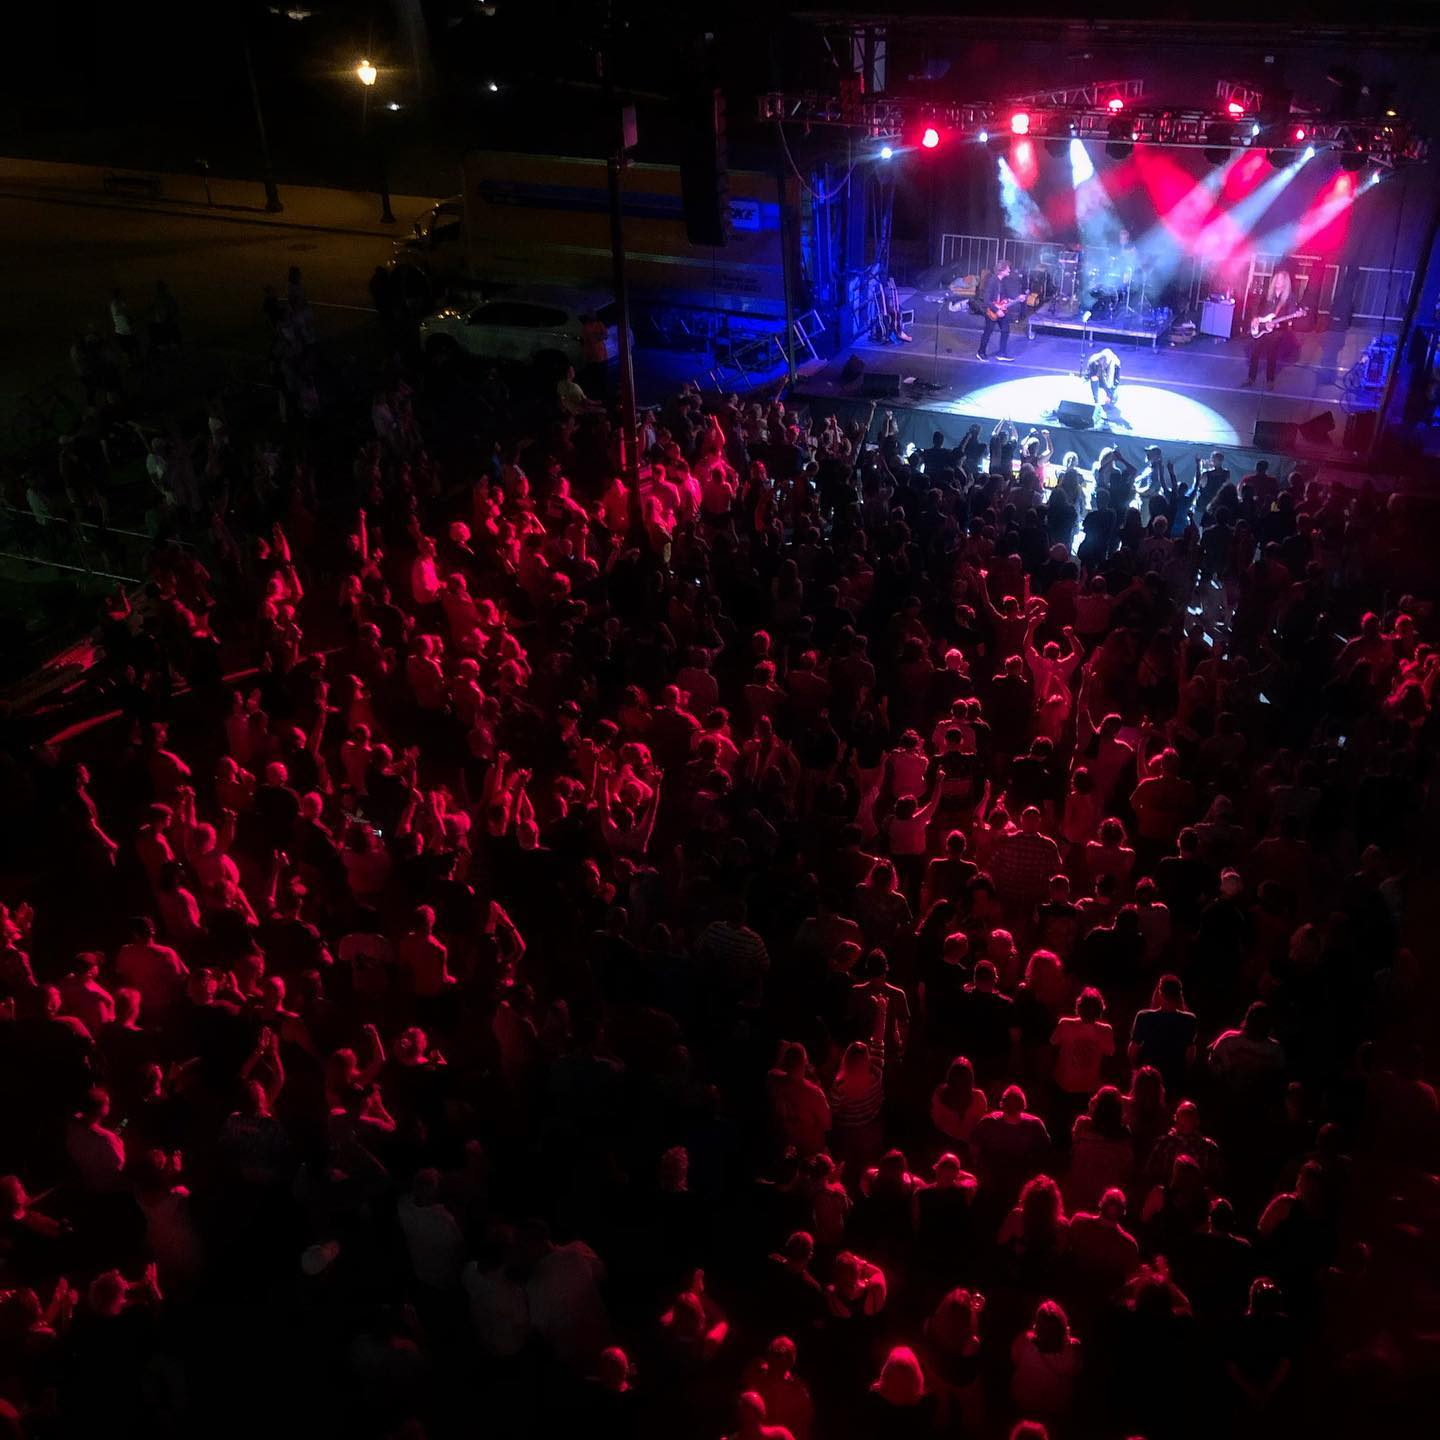 Stairway to Zeppelin drew 5,000 Fans to their performance at BOS center in Springfield, Illinois in July 2019.